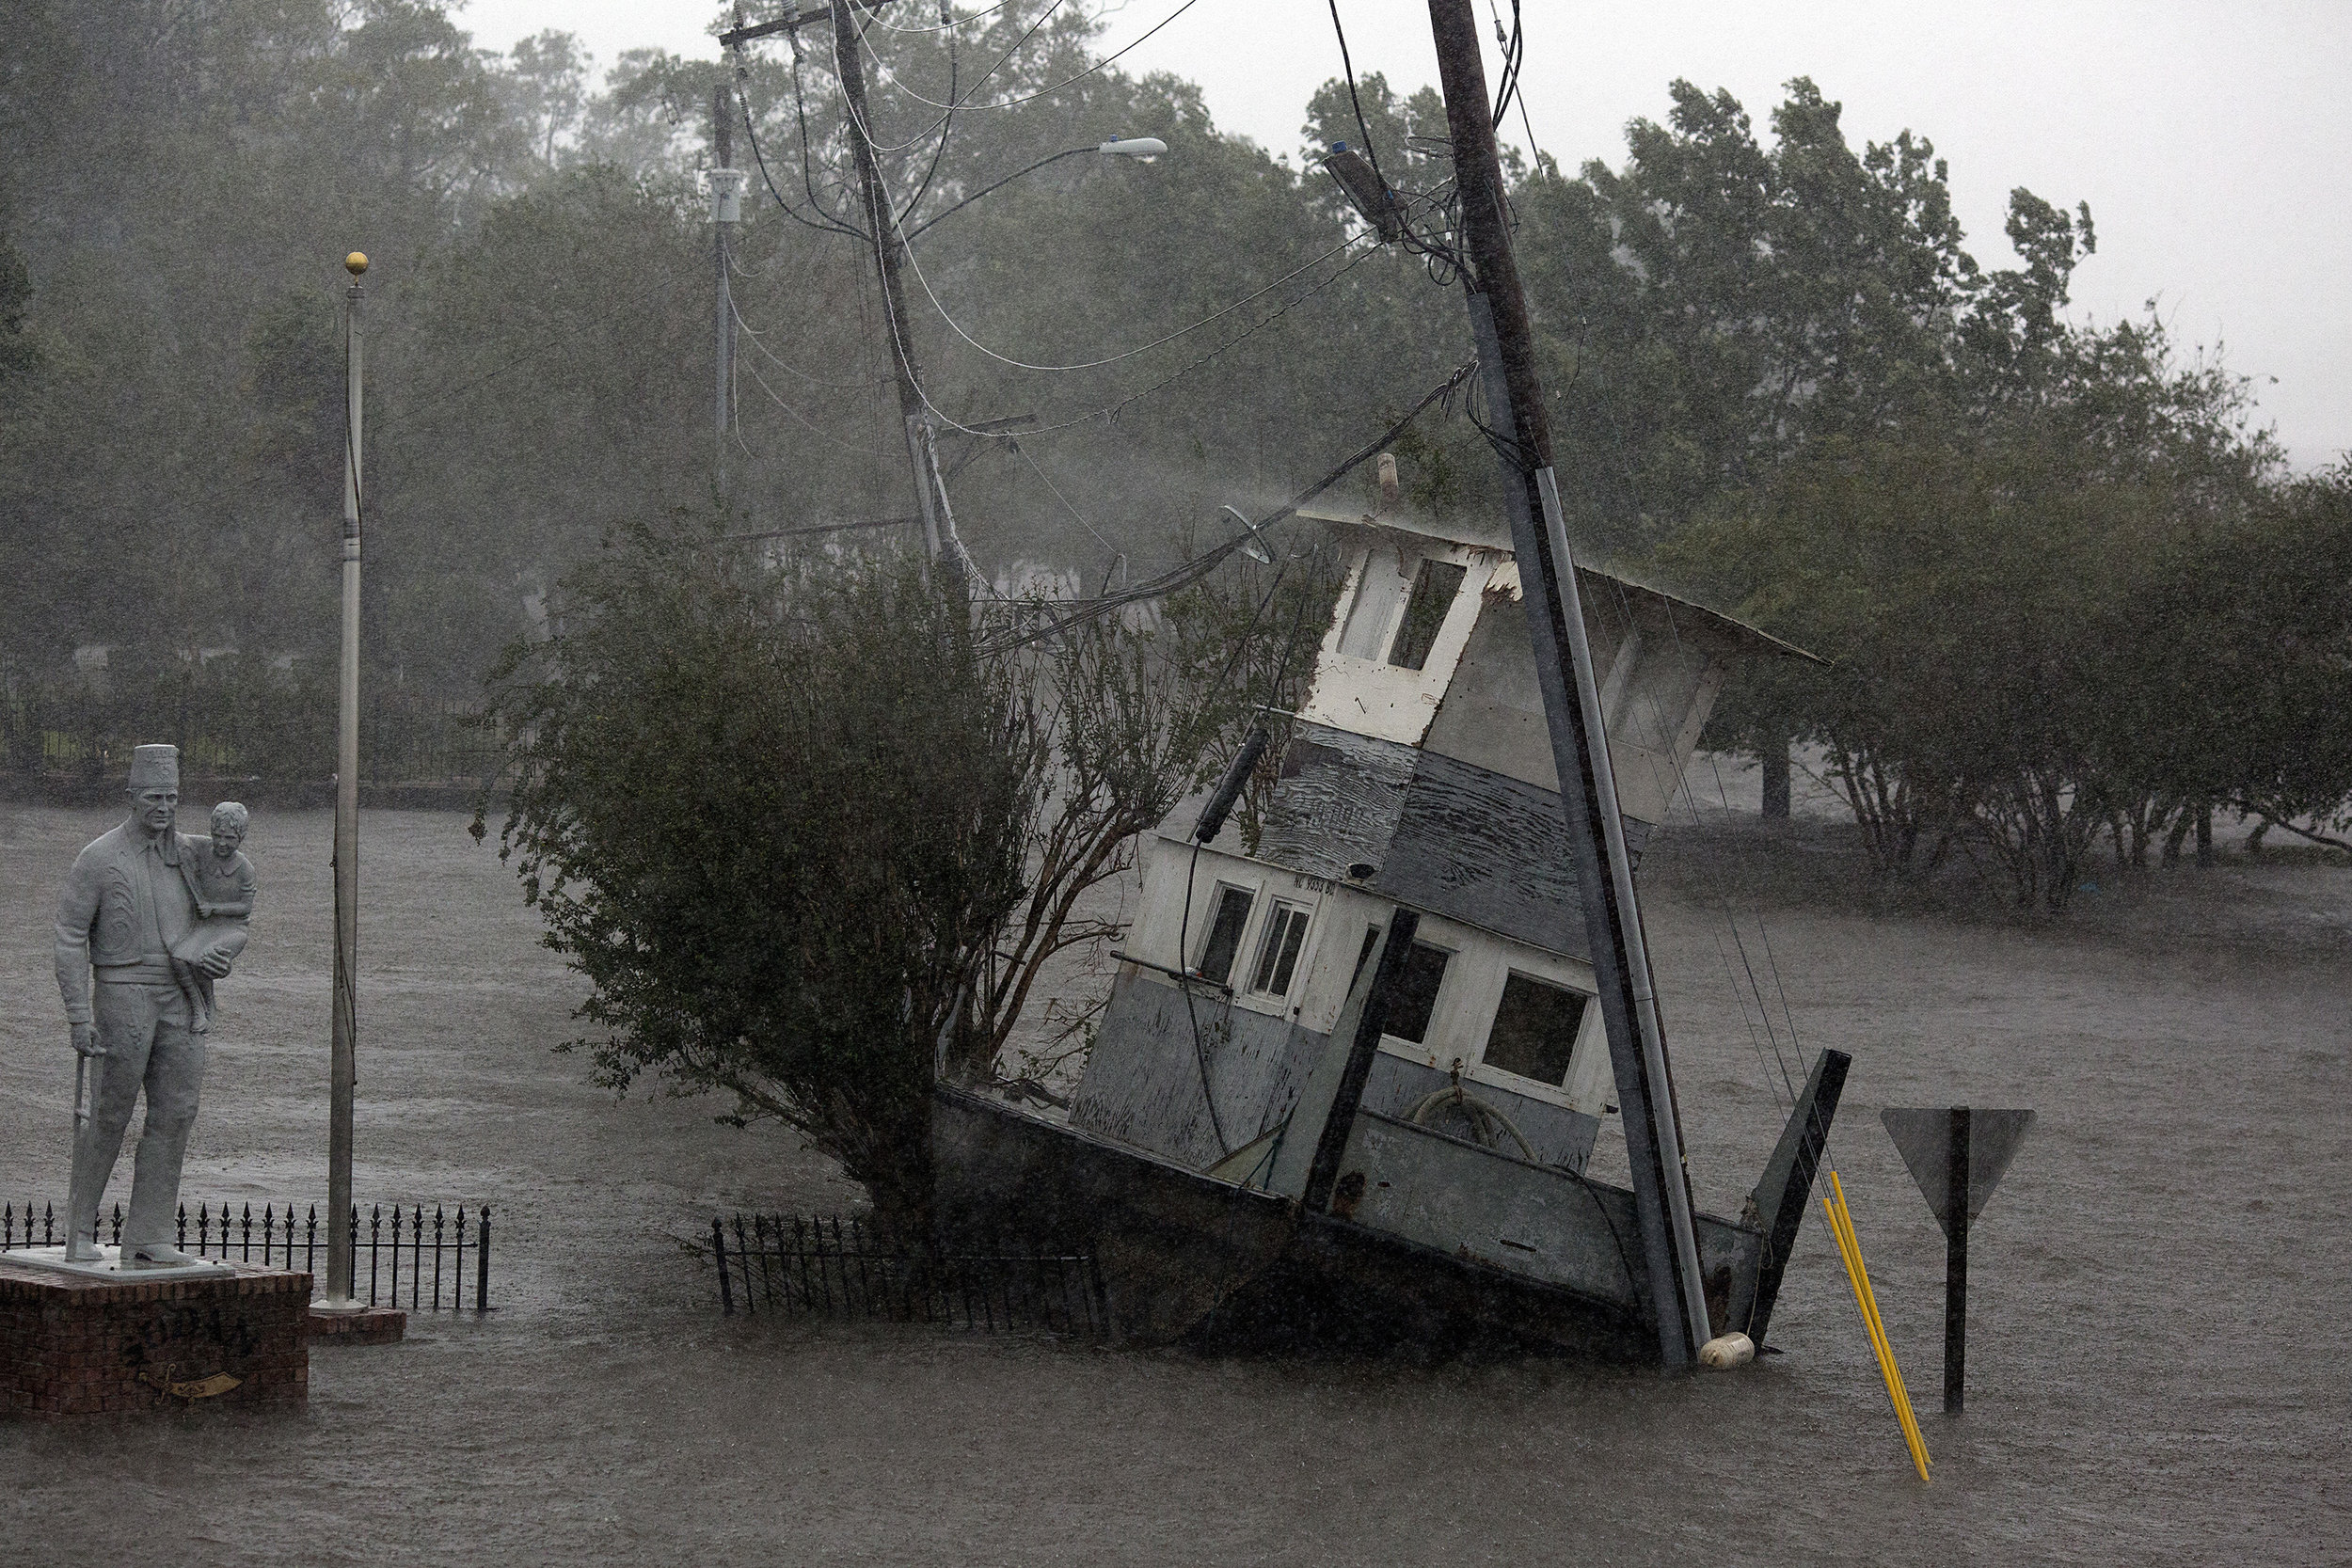 A tugboat, pushed ashore from the nearby Neuse River by the storm surge, is seen Sept. 14 in downtown New Bern, N.C. as rain continued to fall.